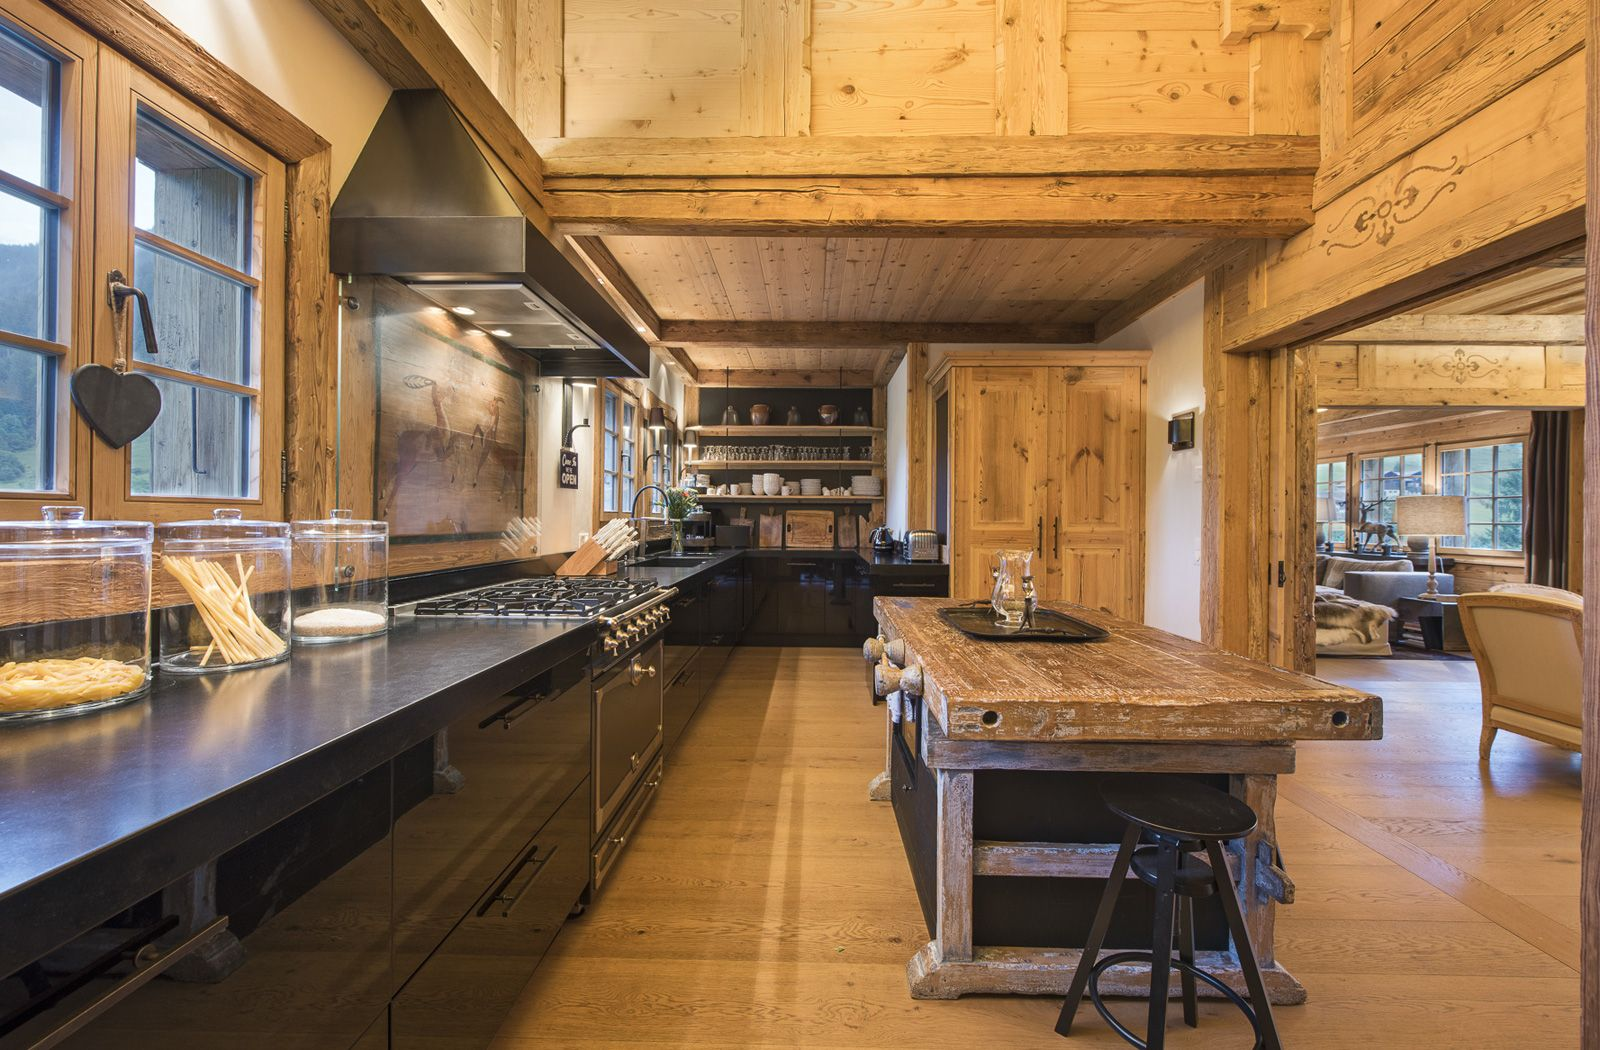 Arredamento Chalet Montagna a luxurious chalet just outside gstaad | arredamento casa